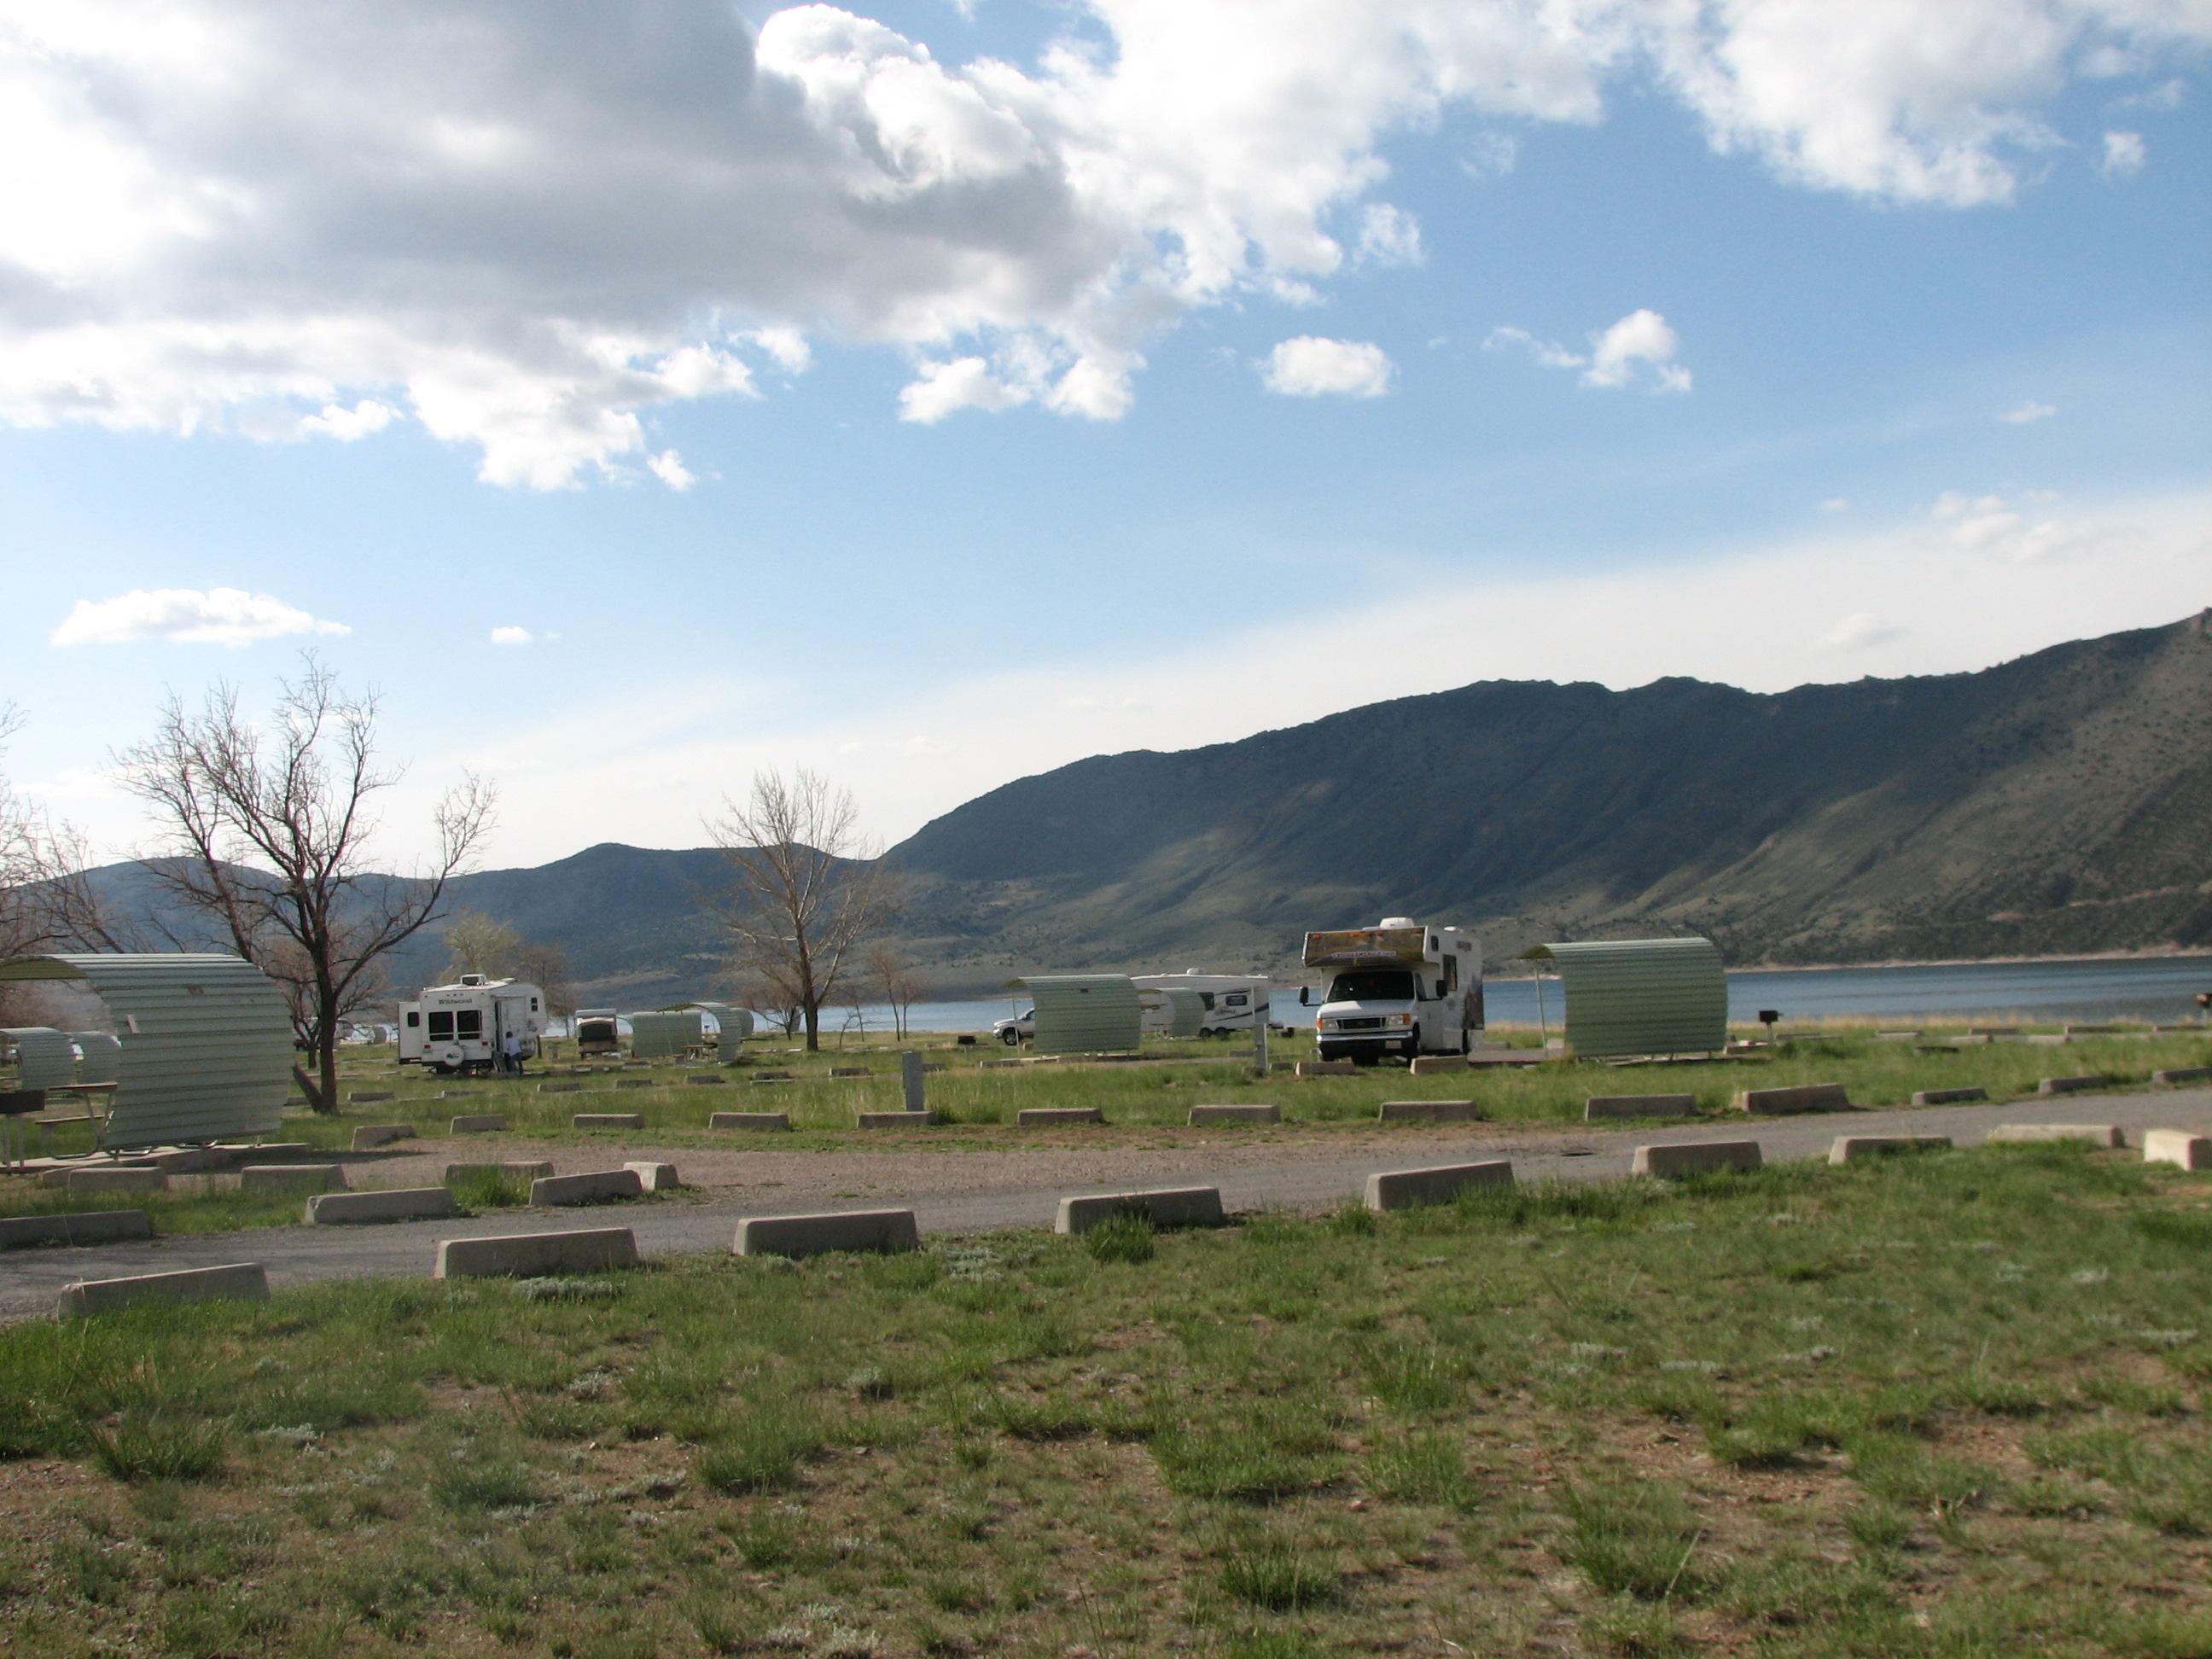 Photo of a site at the Lucerne Valley Campground.